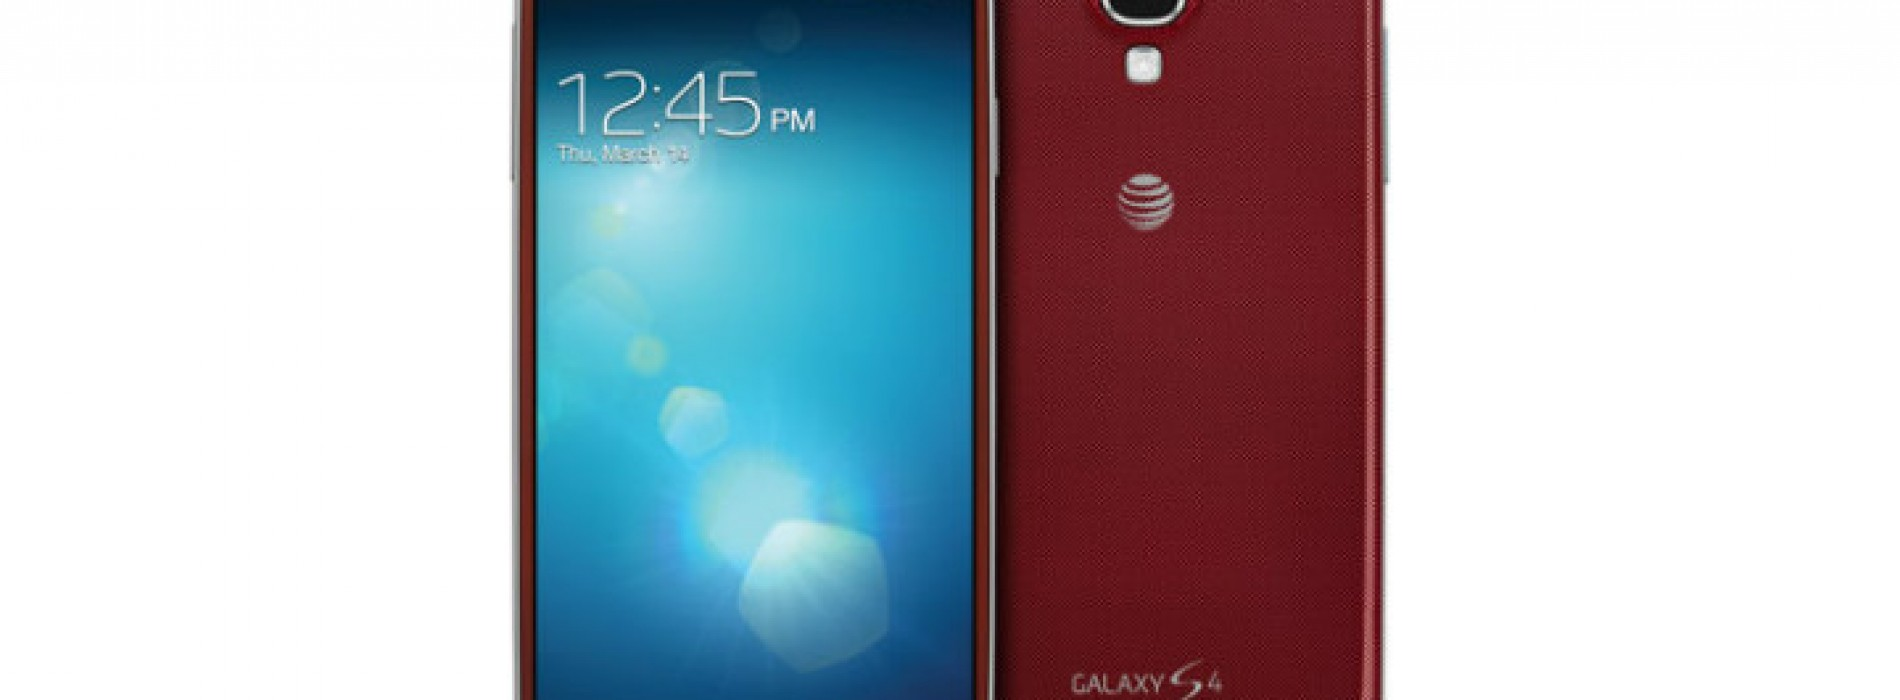 AT&T nabs exclusive 'Aurora Red' Samsung Galaxy S4